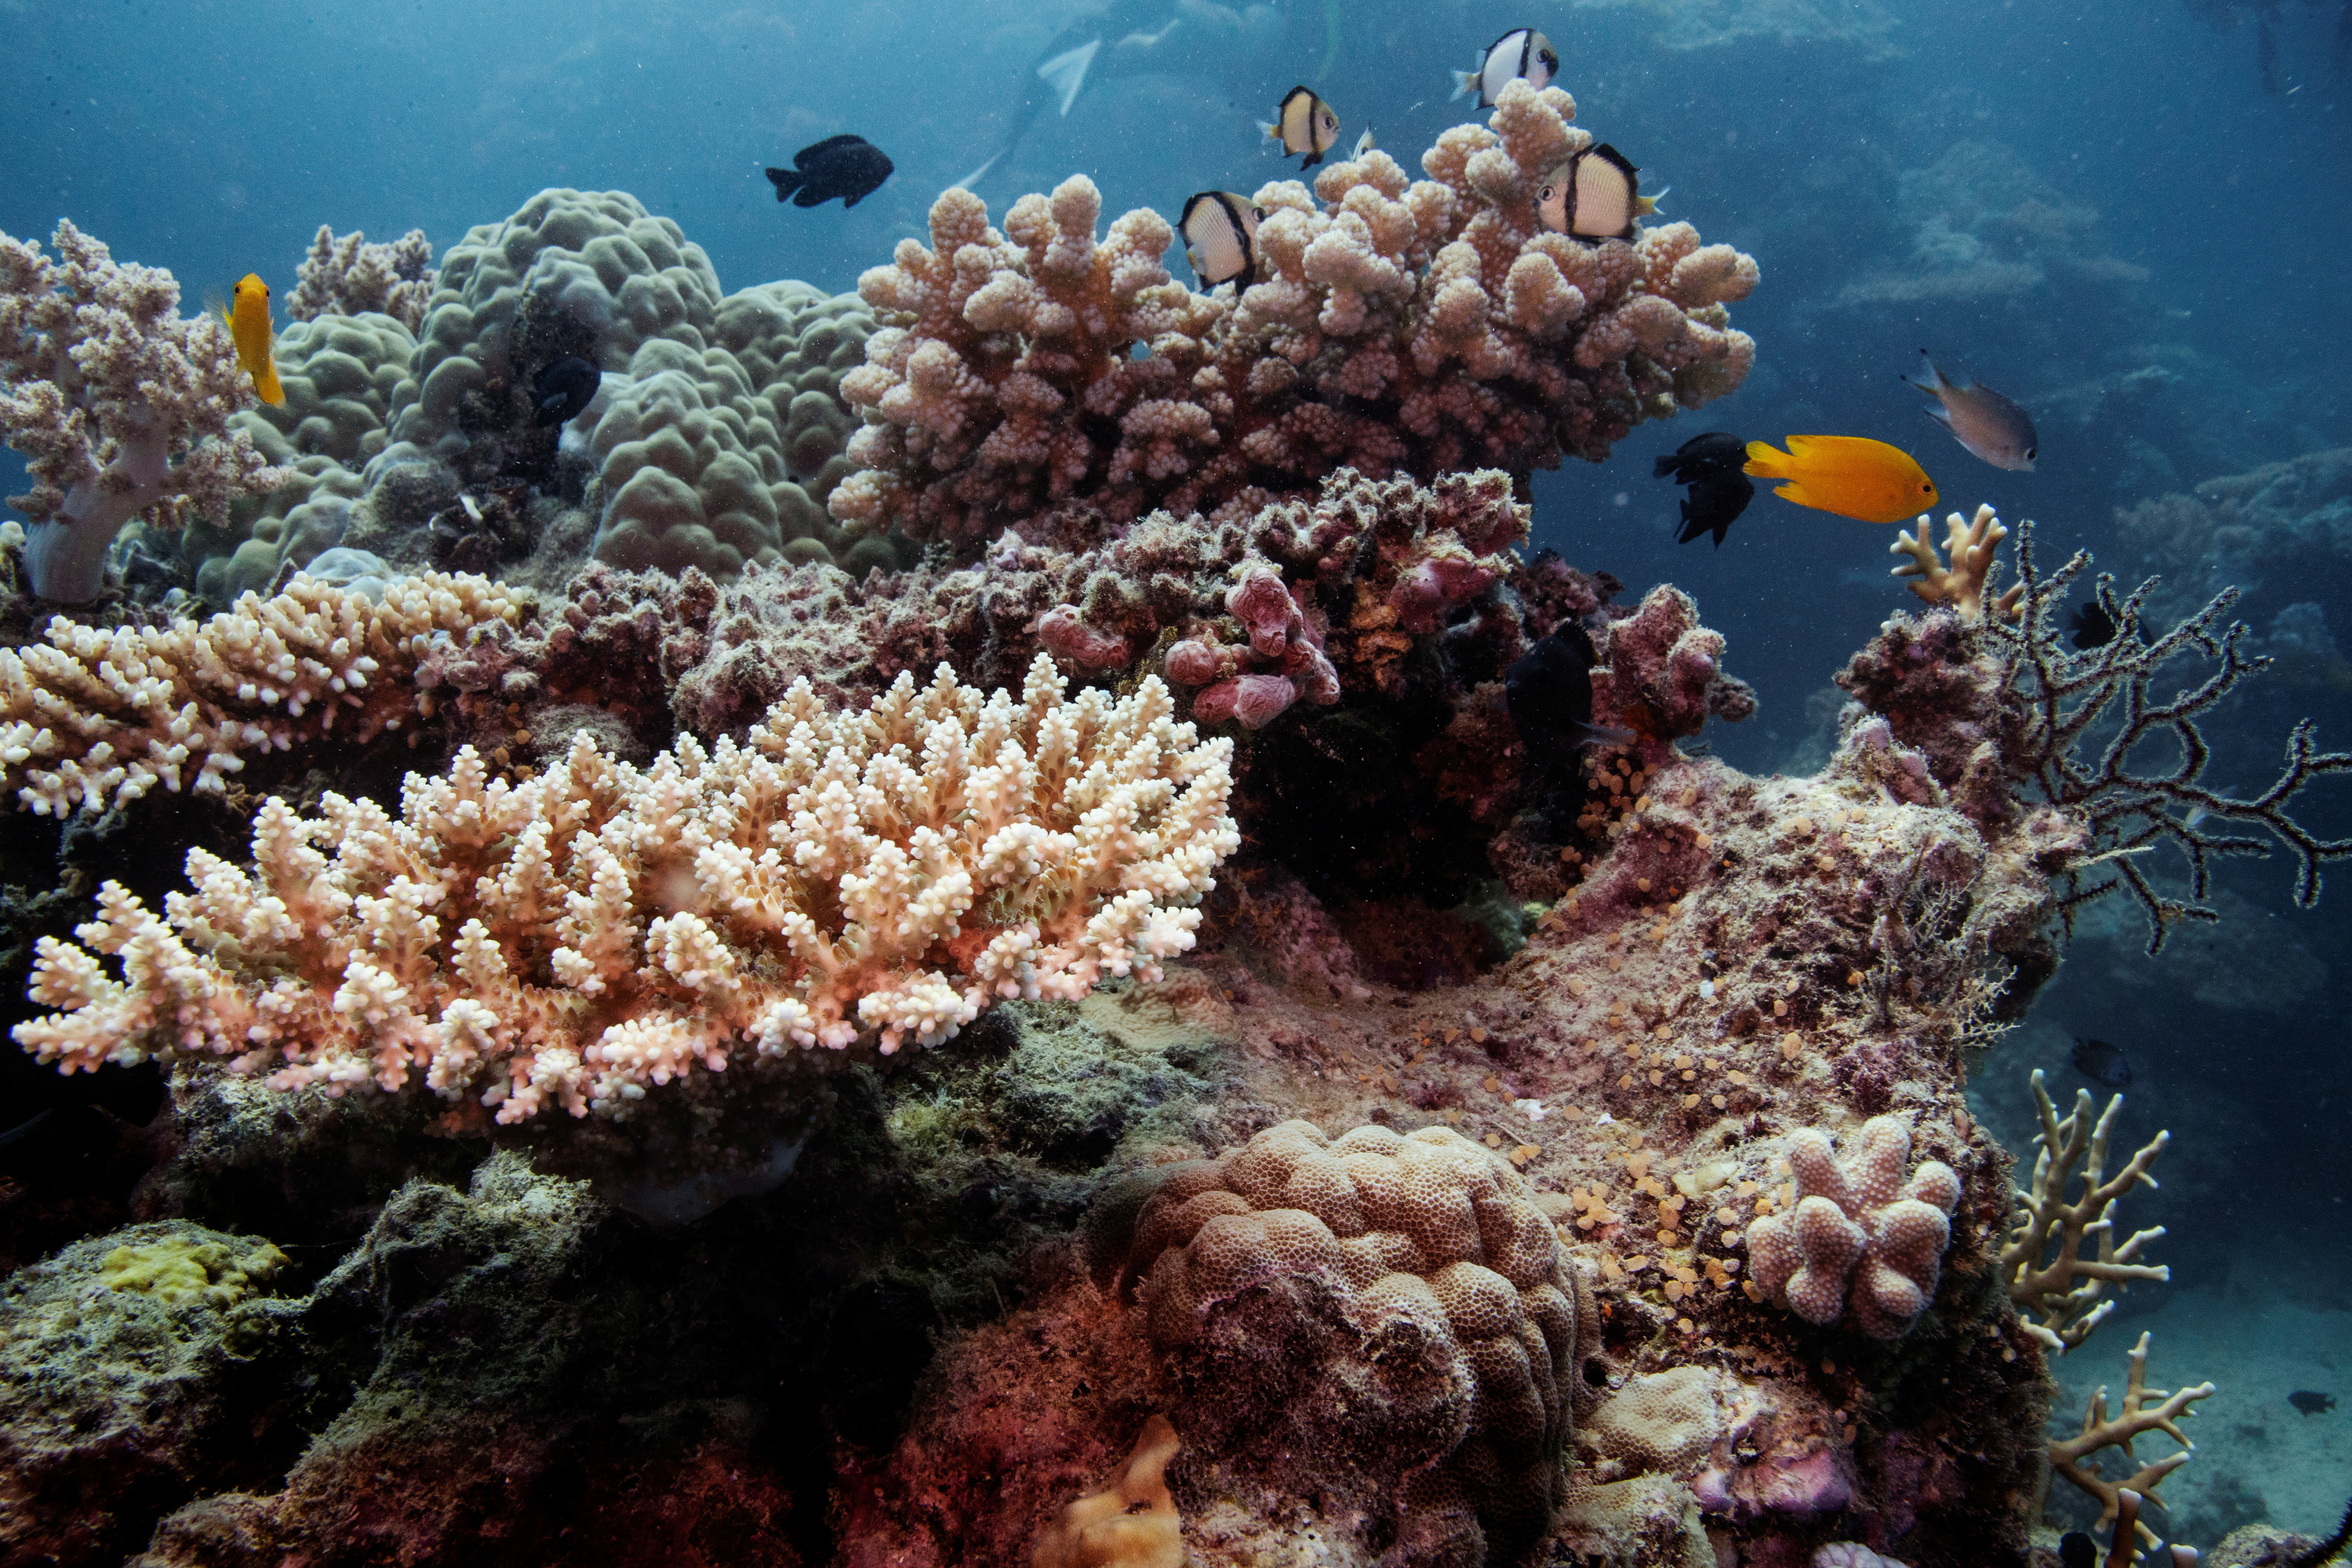 Reef fish swim above recovering coral colonies on the Great Barrier Reef